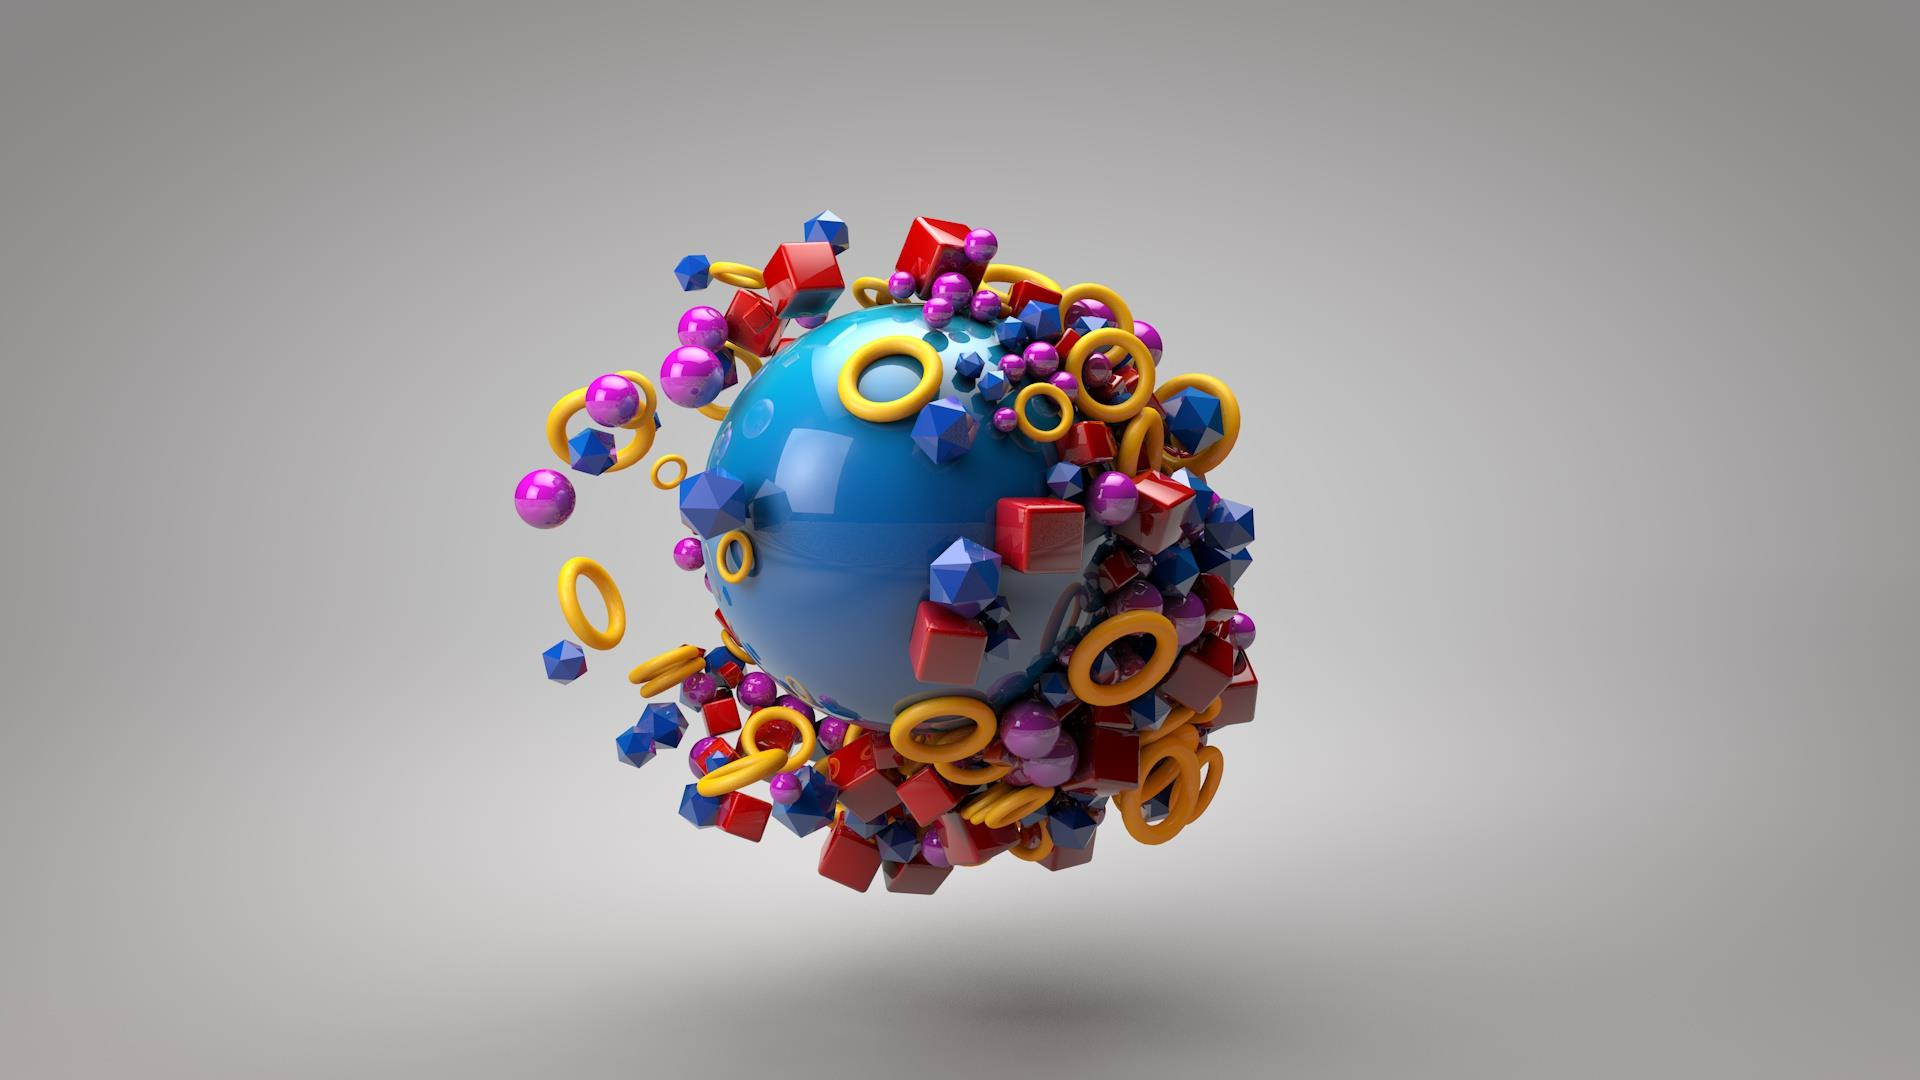 3D Rendering Motiongraphic